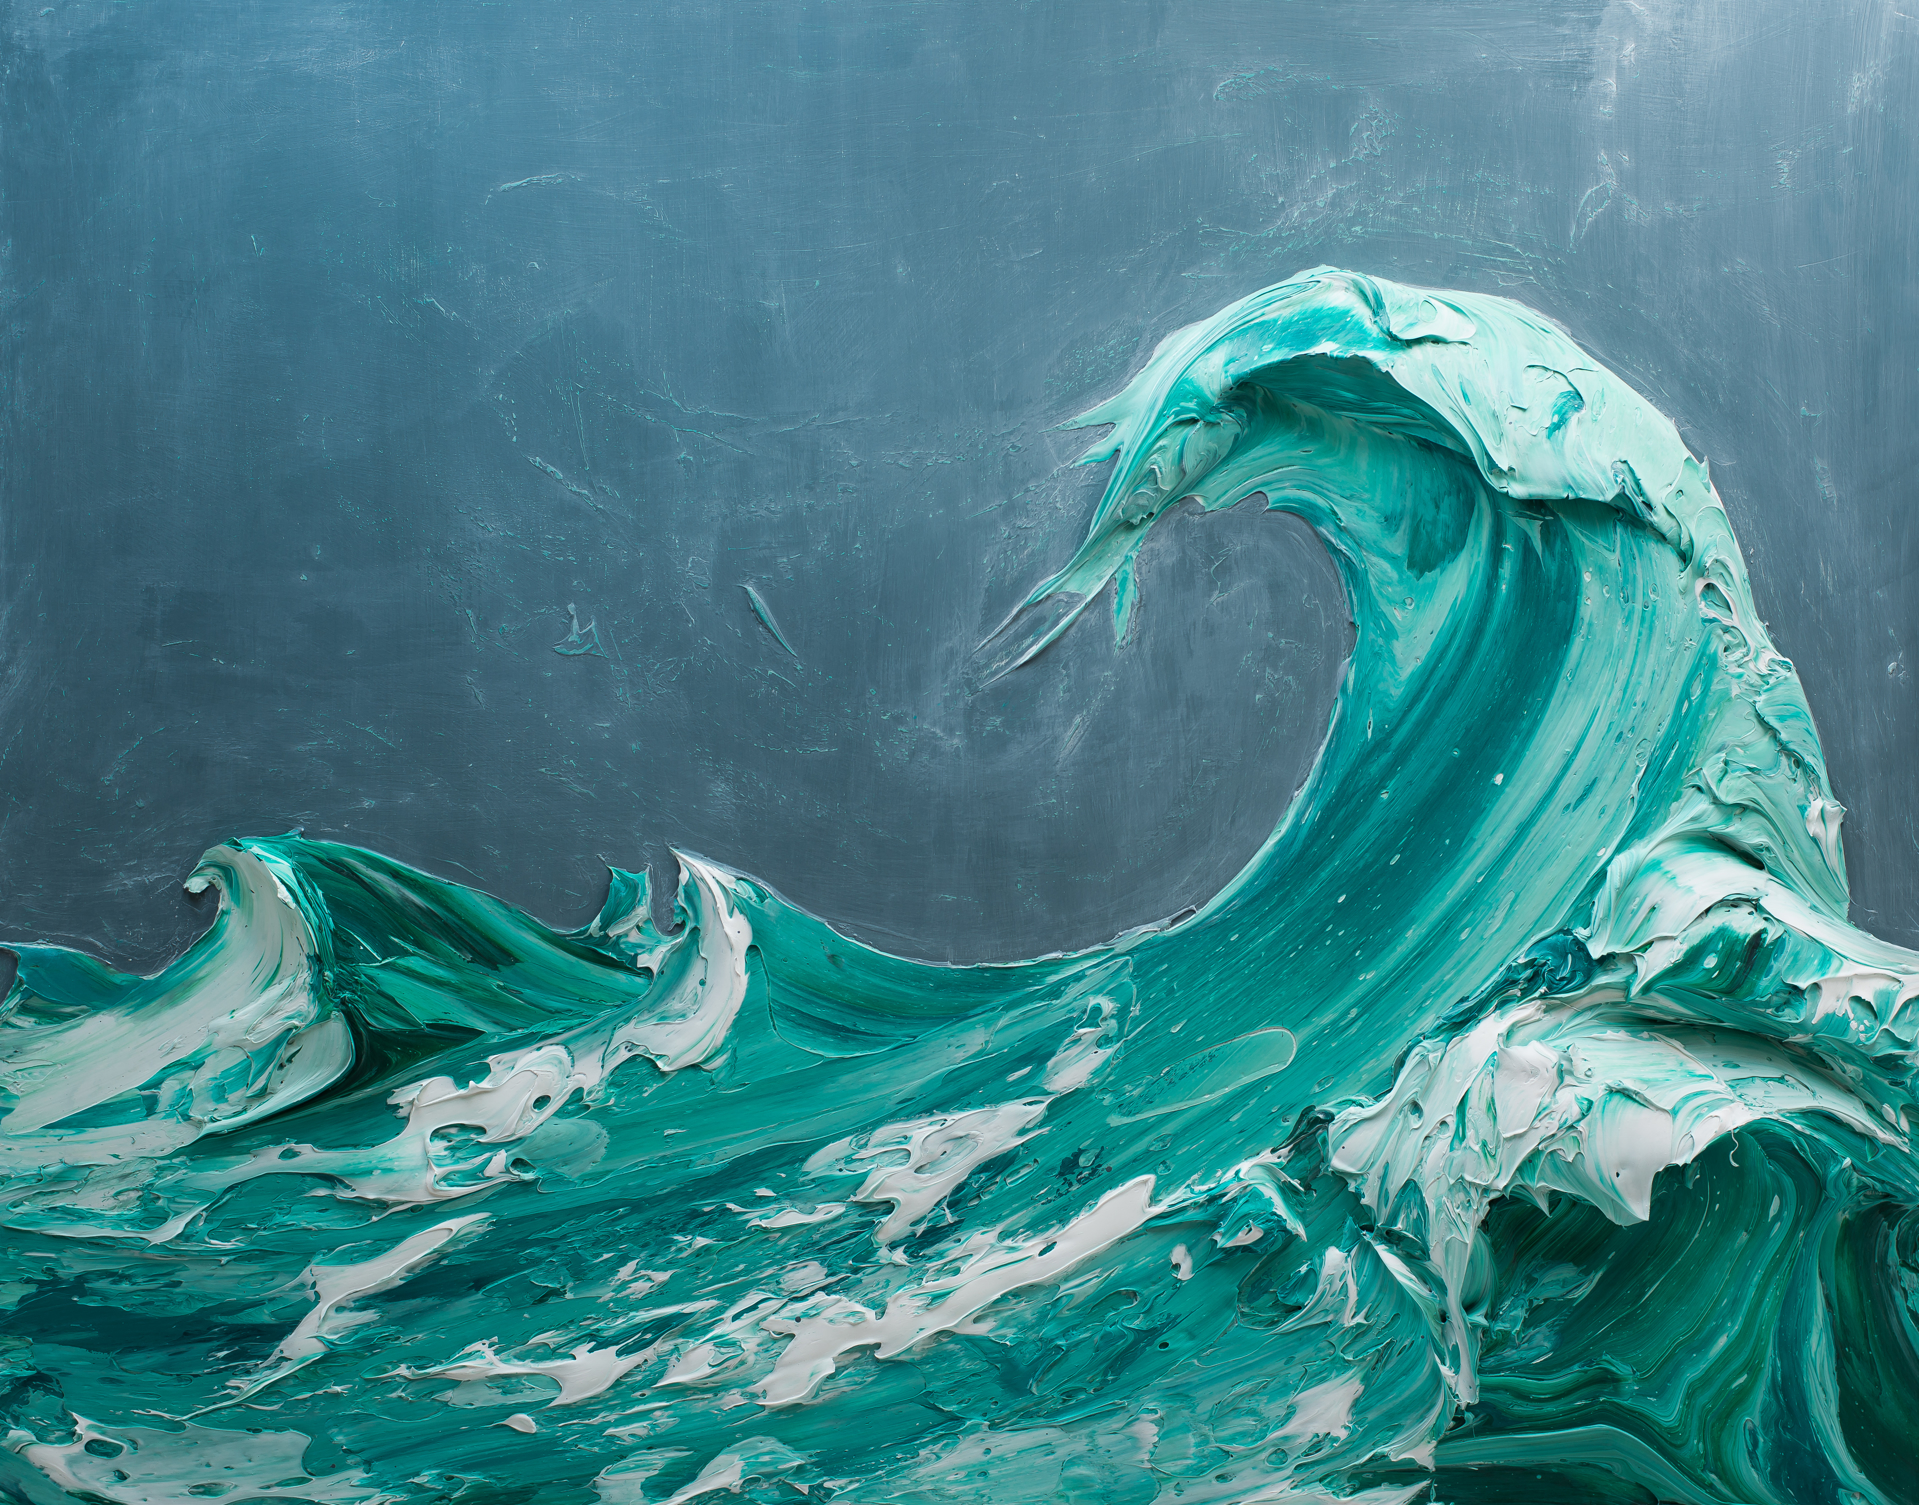 Wave by JUSTIN GAFFREY